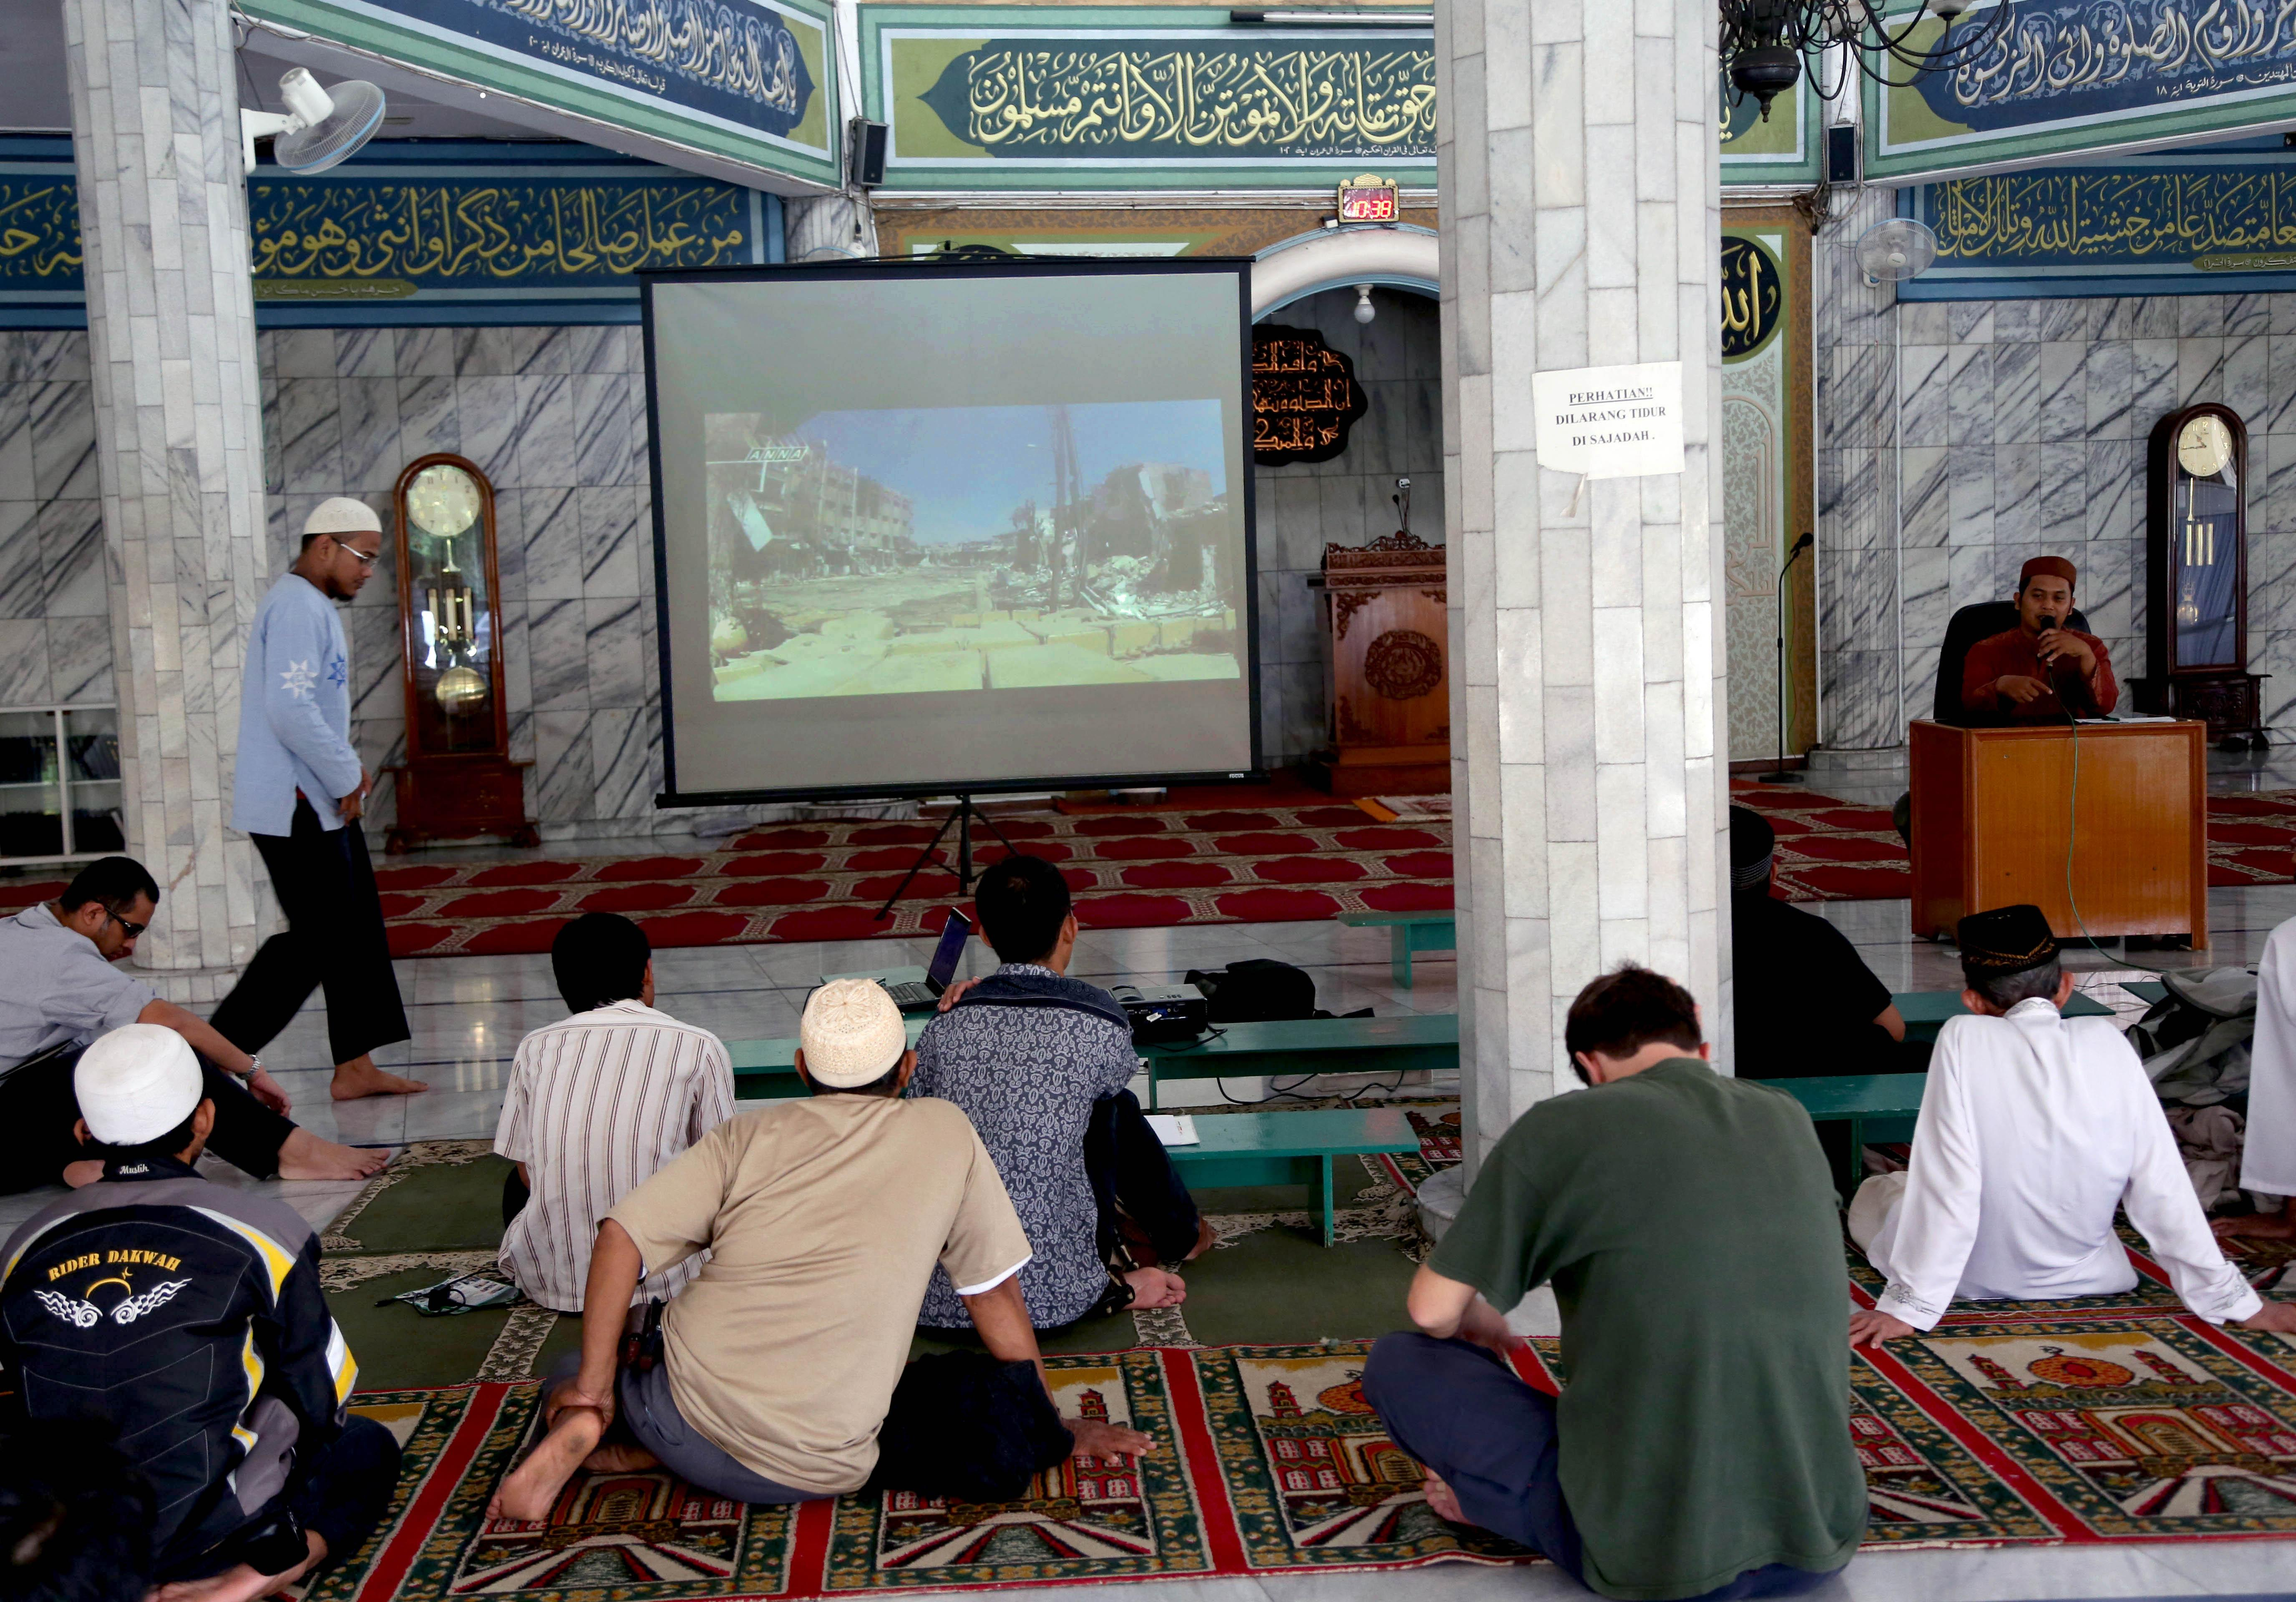 In this Sunday, Dec. 15, 2013 photo, Muslim men watch a slideshow of pictures believed to be from Syria during a prayer calling for jihad to Syria at a mosque in Jakarta, Indonesia. While security agencies in Europe and beyond are worried about militants returning from Syria, Indonesia knows only too well how foreign battlefields, training opportunities and contact with al-Qaida can lead to deadly results. Indonesian anti-terror officials estimated there were around 50 Indonesian militants fighting against the regime of Bashar Assad in Syria and the number is expected to grow. (AP Photo/Tatan Syuflana)